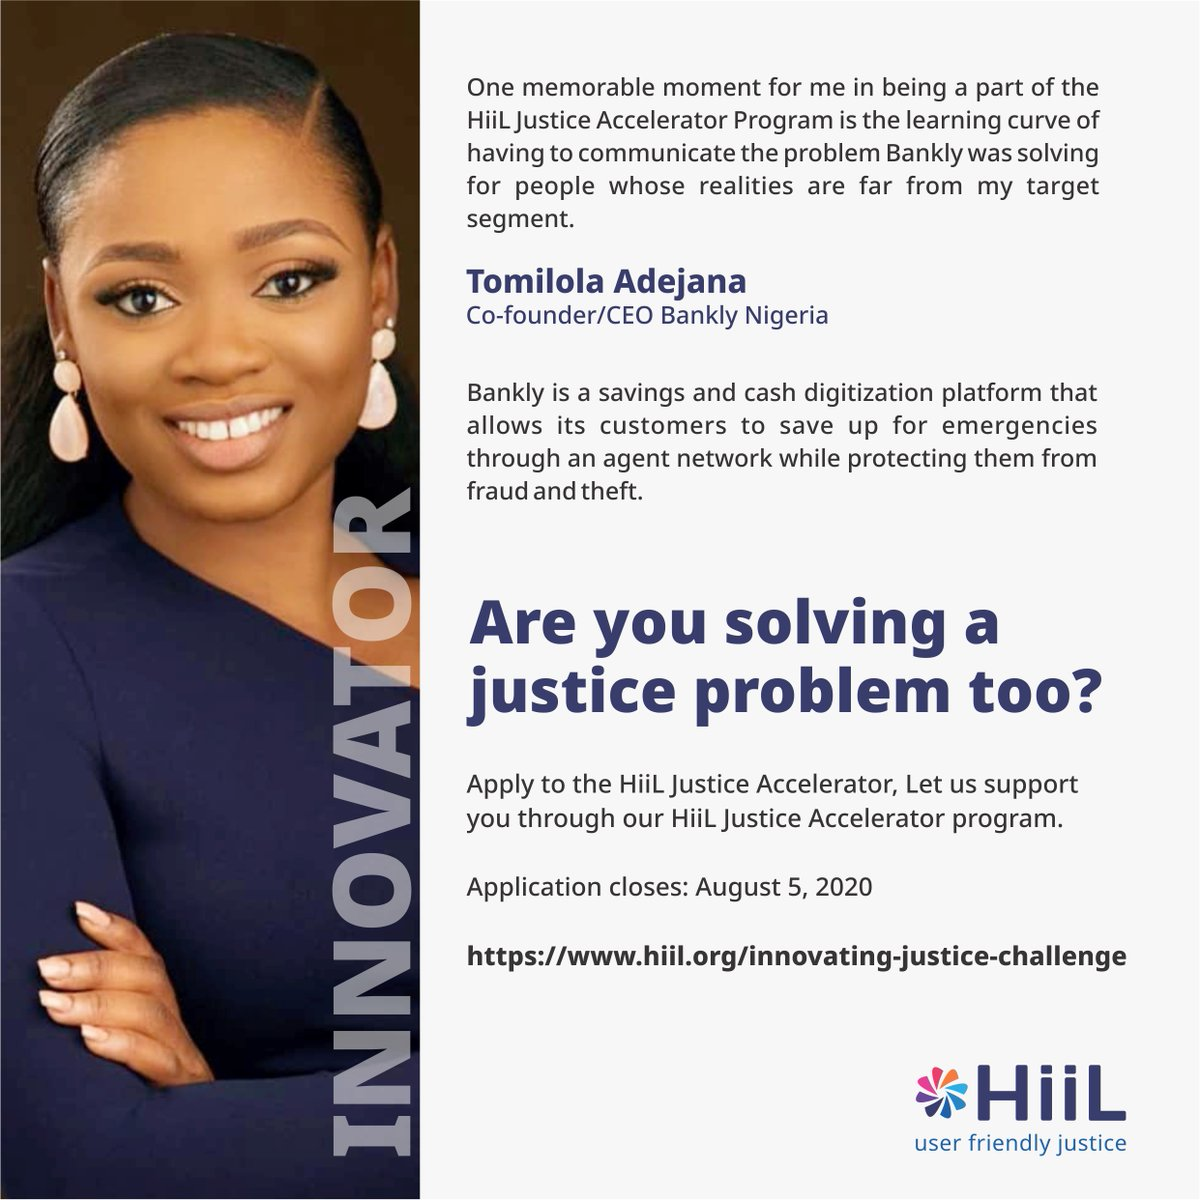 One memorable moment for me in being a part of the HiiL Justice Accelerator Program is the learning curve of having to communicate the problem Bankly was solving for people whose realities are far from my target segment         - @Msteebimbs Co-founder/CEO @BanklyNG https://t.co/trhi5SlOgK